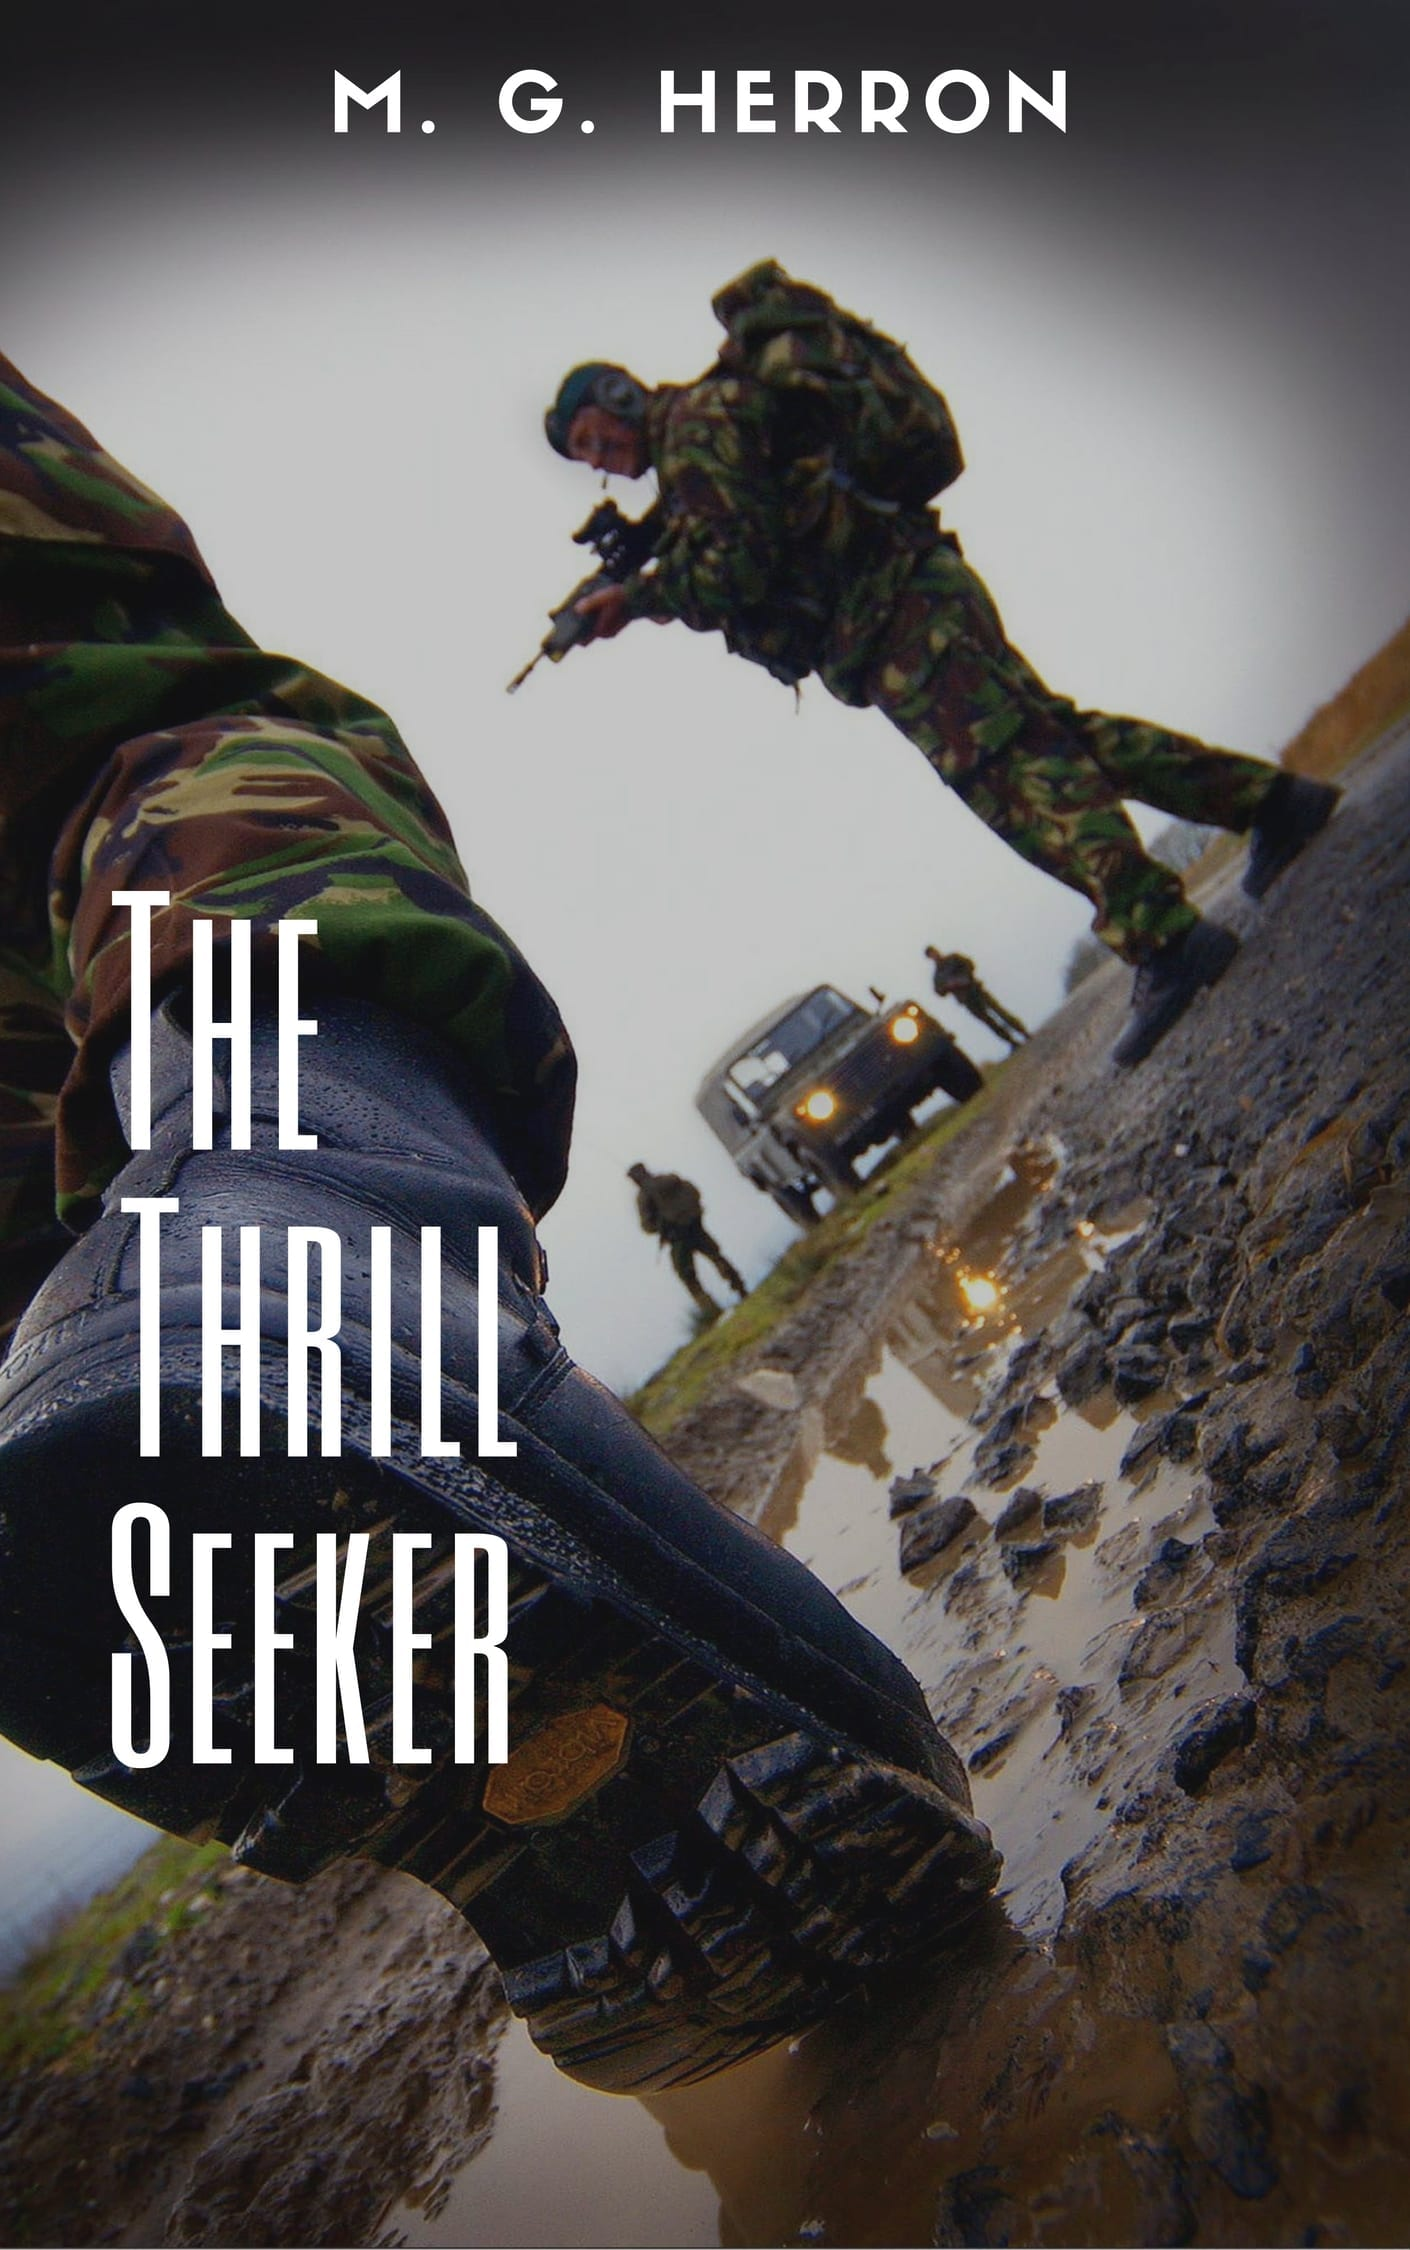 The Thrill Seeker, a literary story, ebook cover